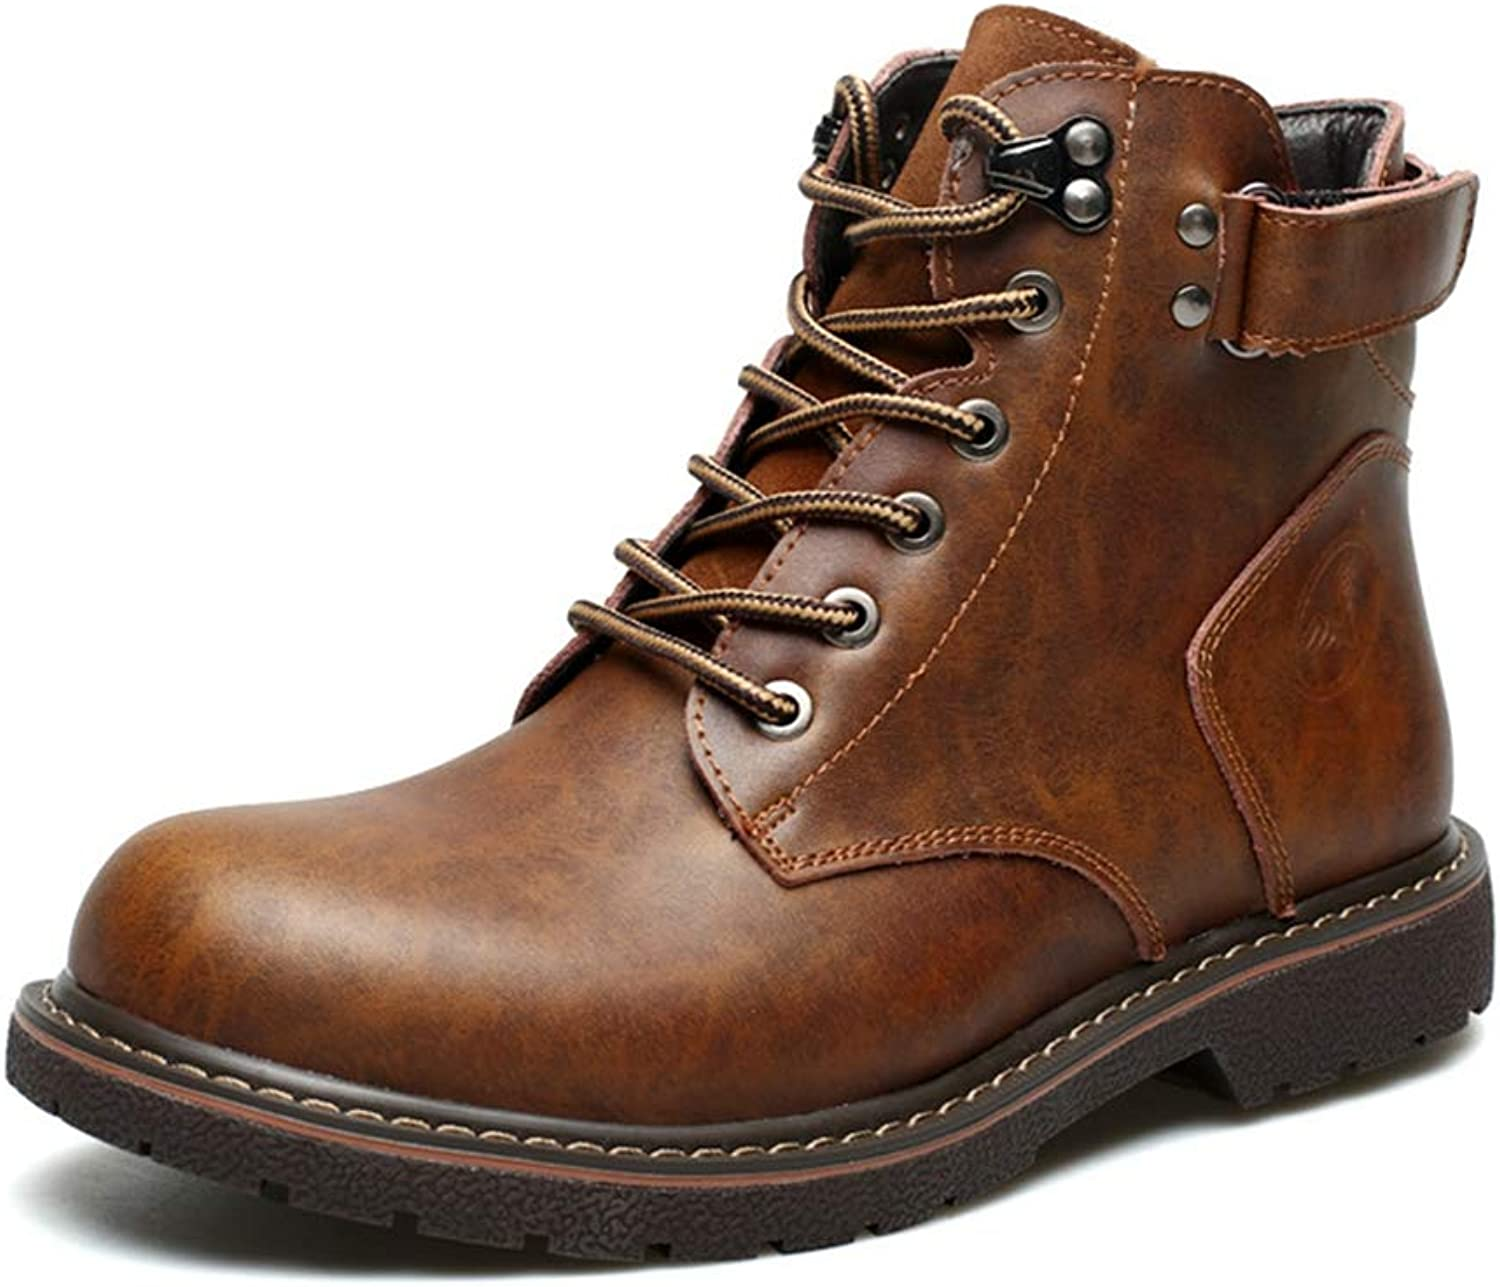 Giles Jones Combat Boots for Men Winter Casual Breathable Wear-Resisting Motorcycle Boots